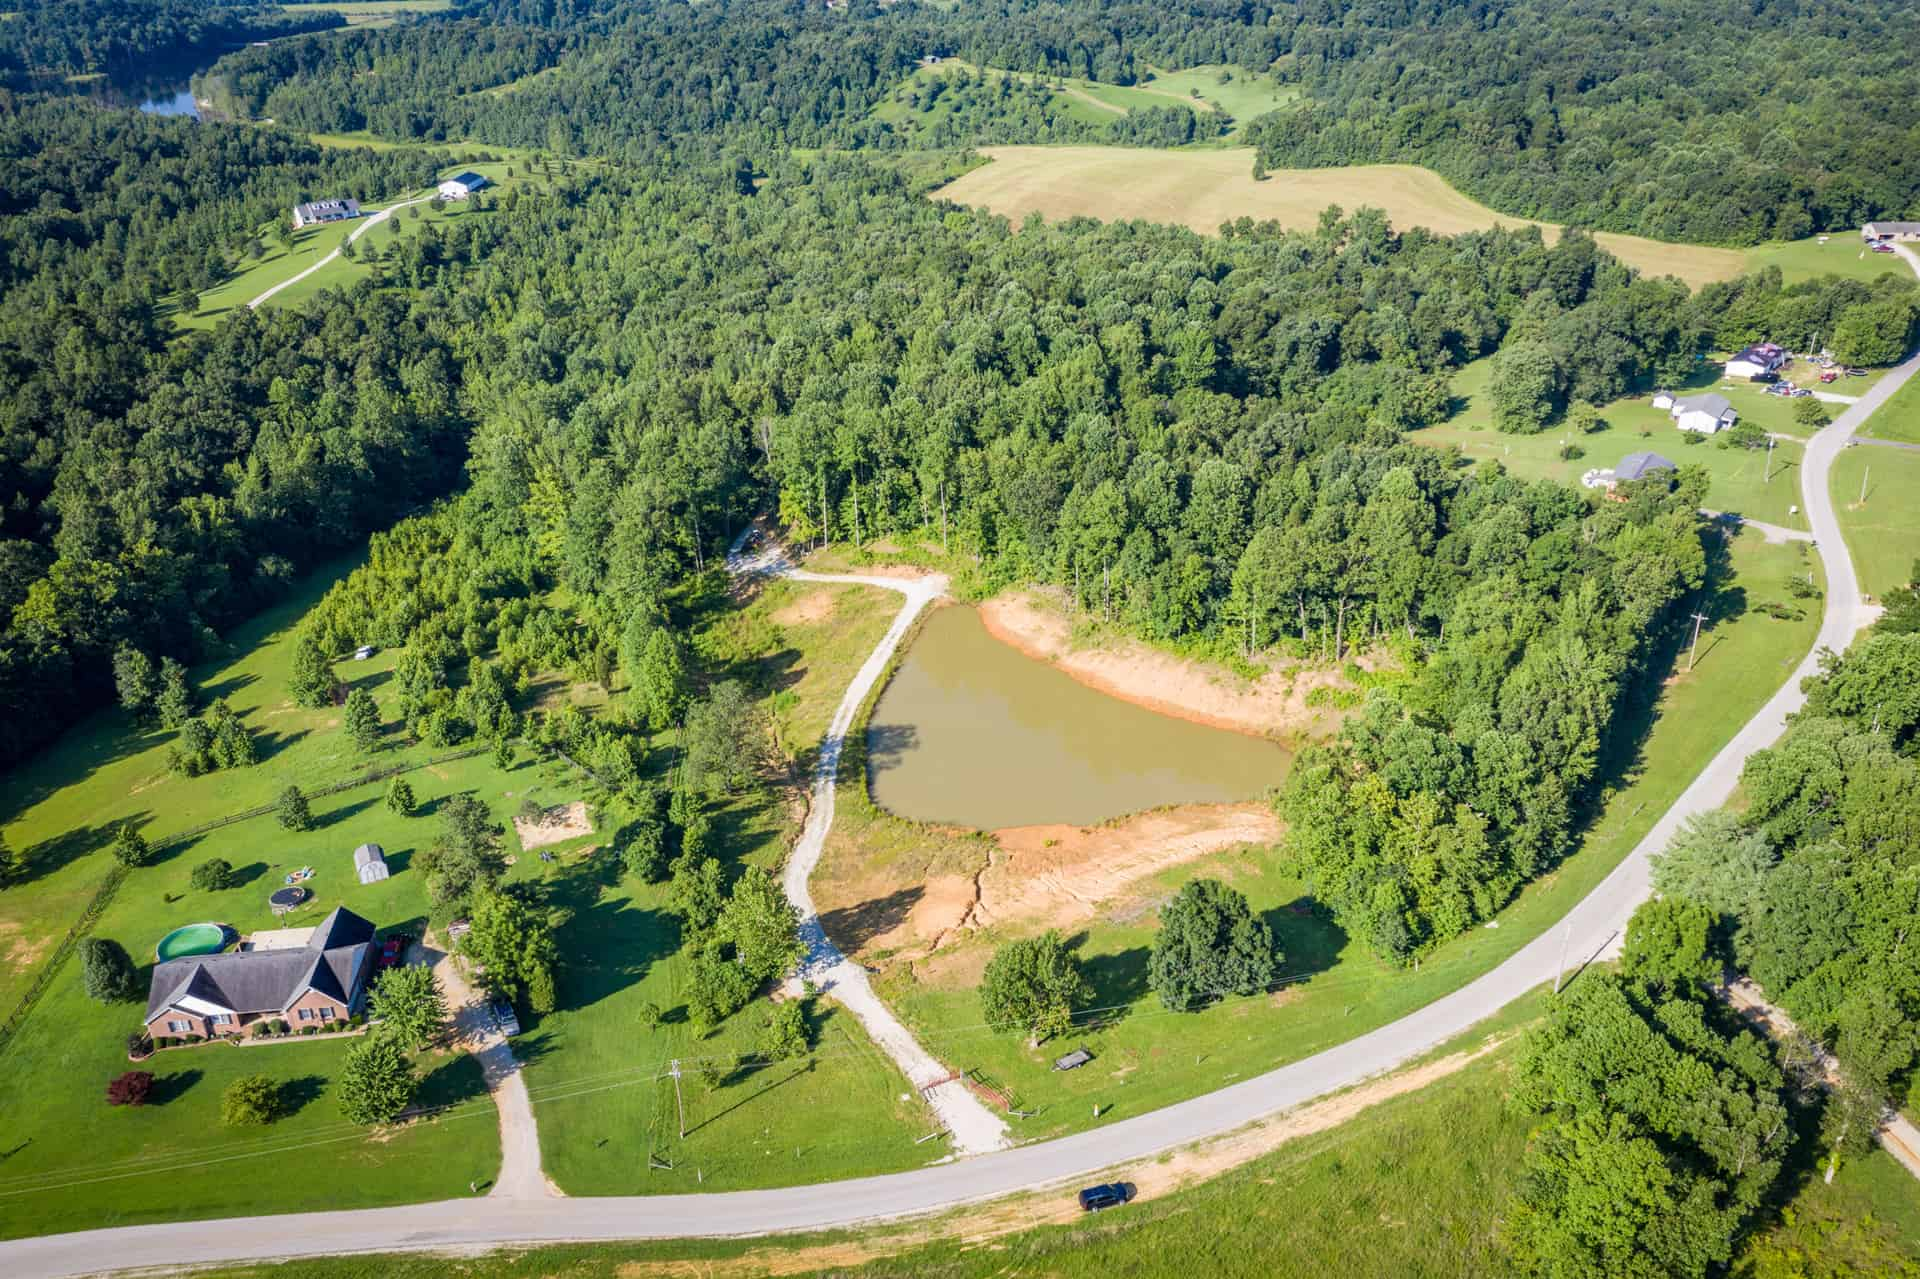 North Indian Hill Rd., Hawesville, KY 42348